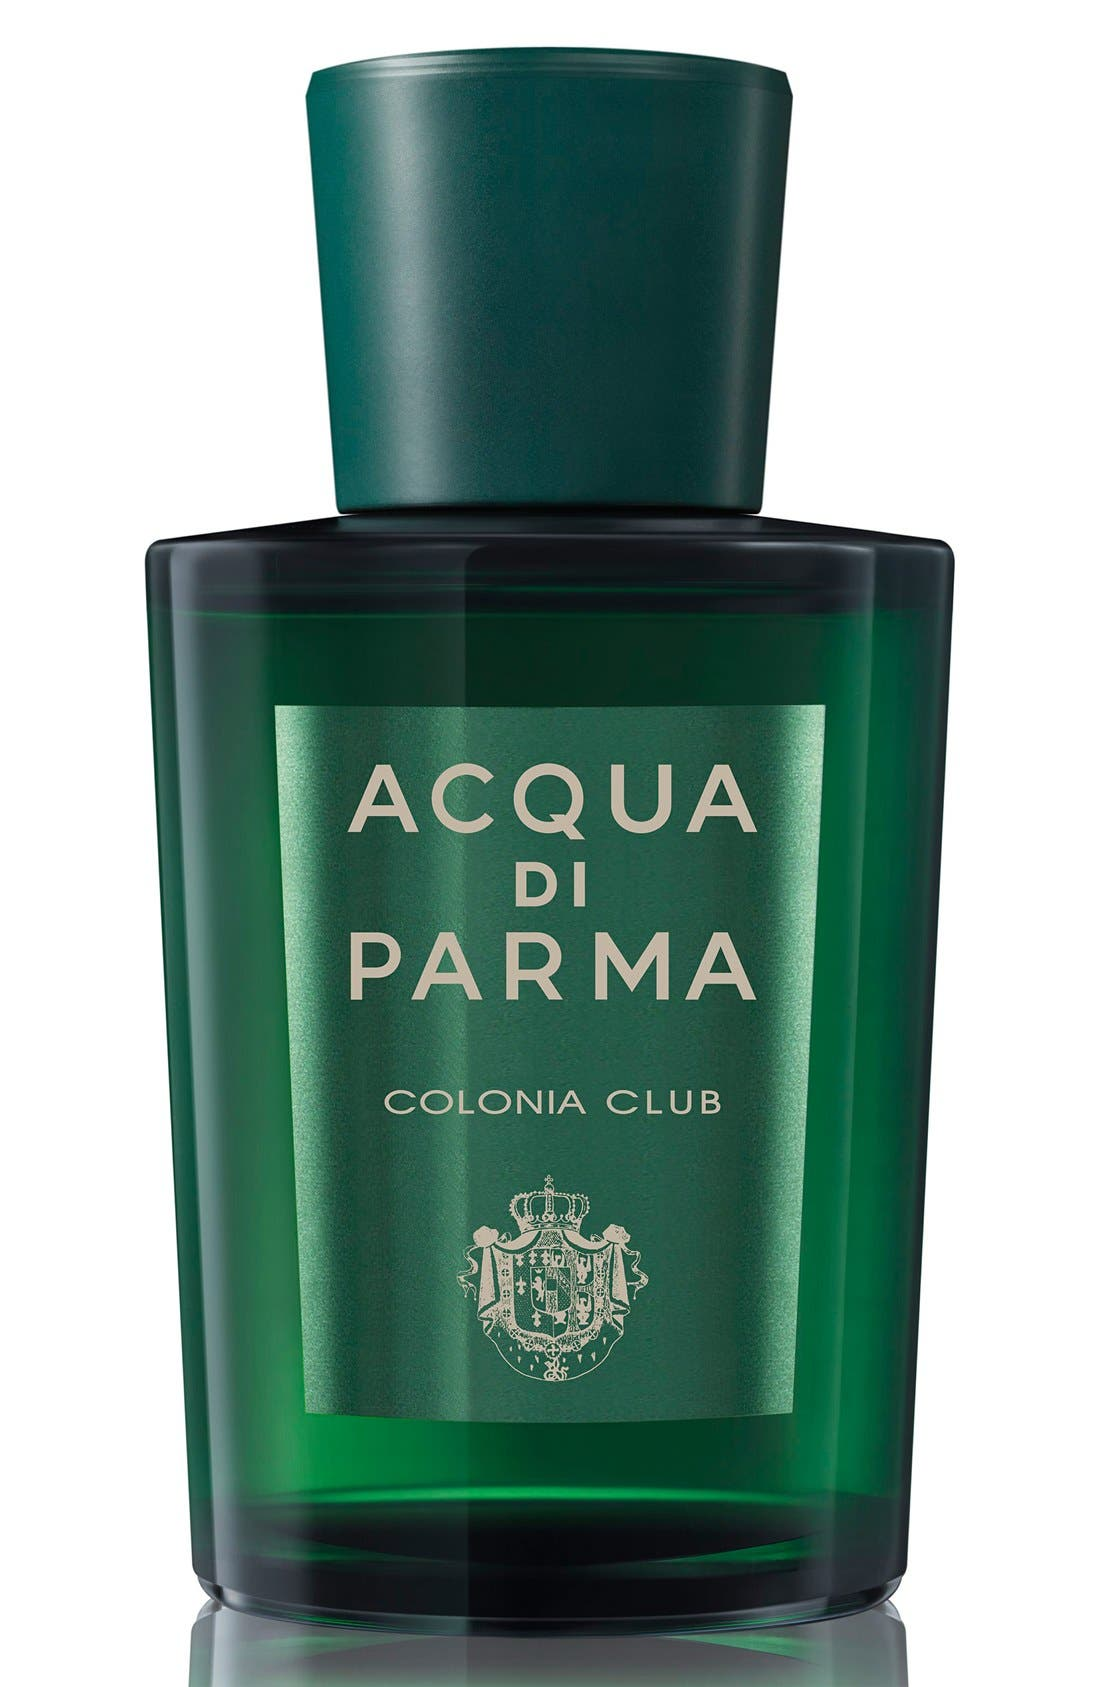 Acqua di Parma 'Colonia Club' Eau de Toilette